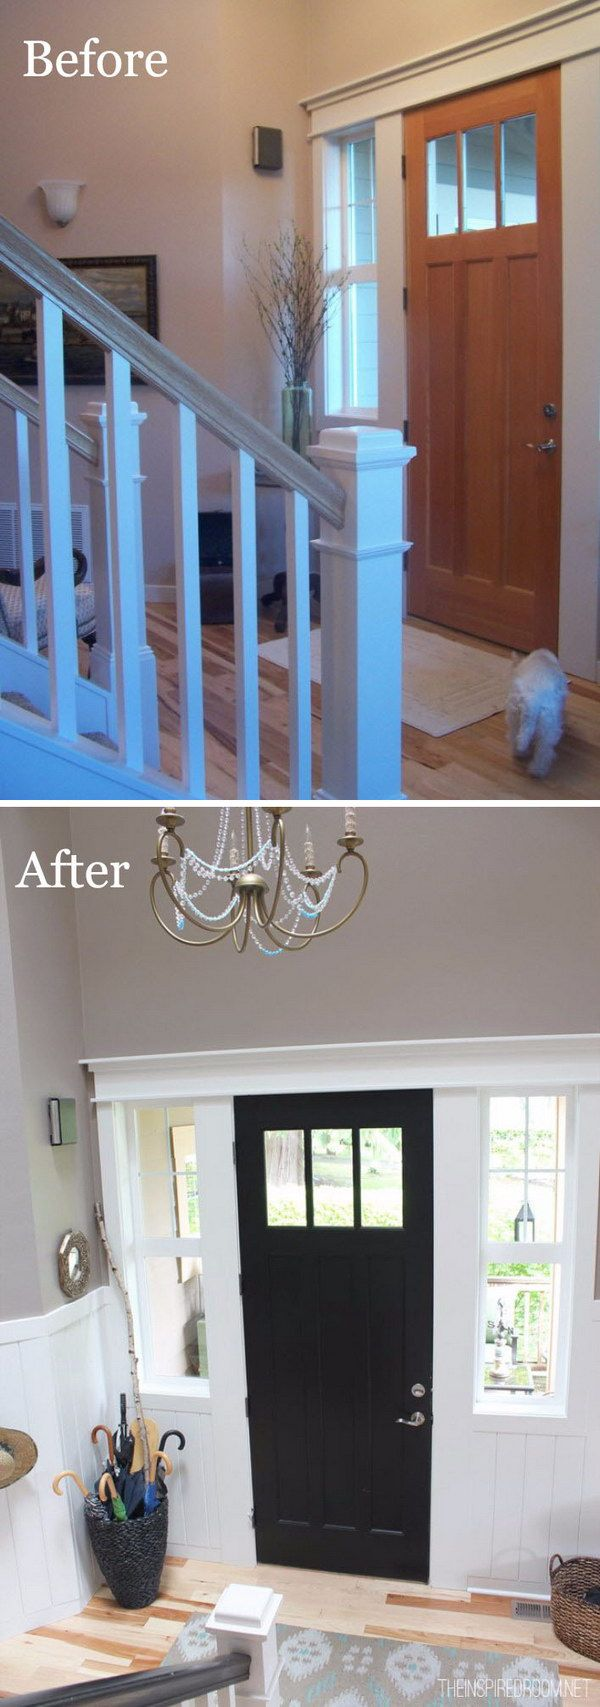 Enhance an Entryway with Board & Batten and Painting.